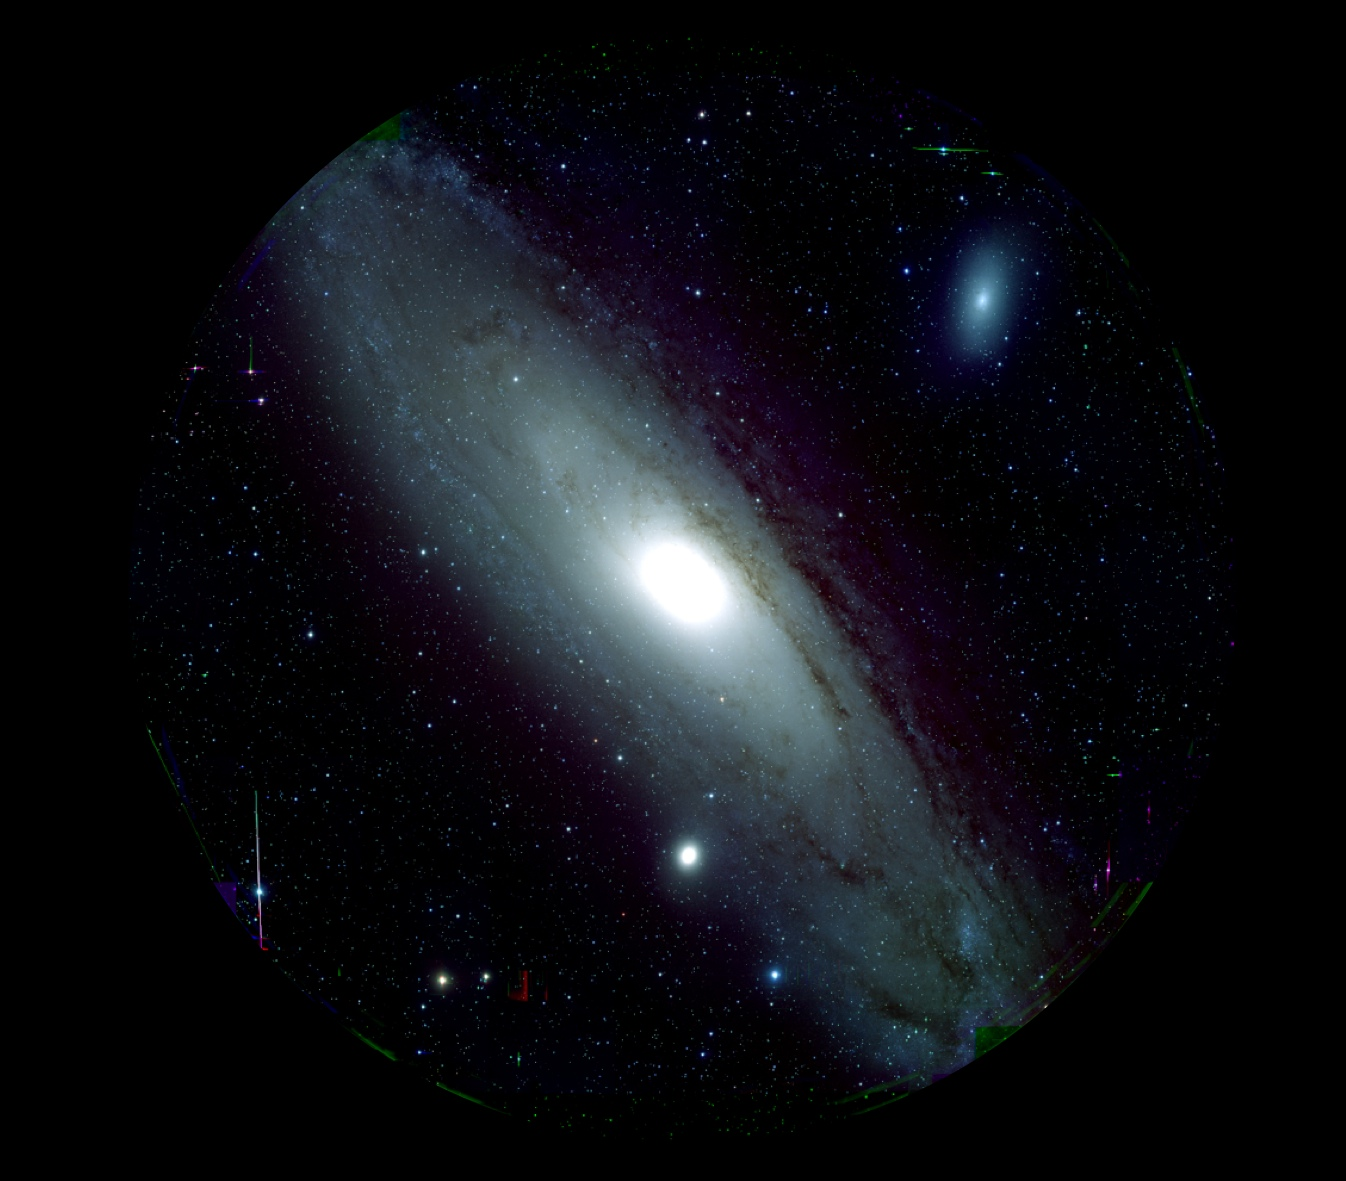 Figure 1: M 31 captured by Hyper Suprime-Cam (HSC) (Credit: HSC Project/NAOJ)